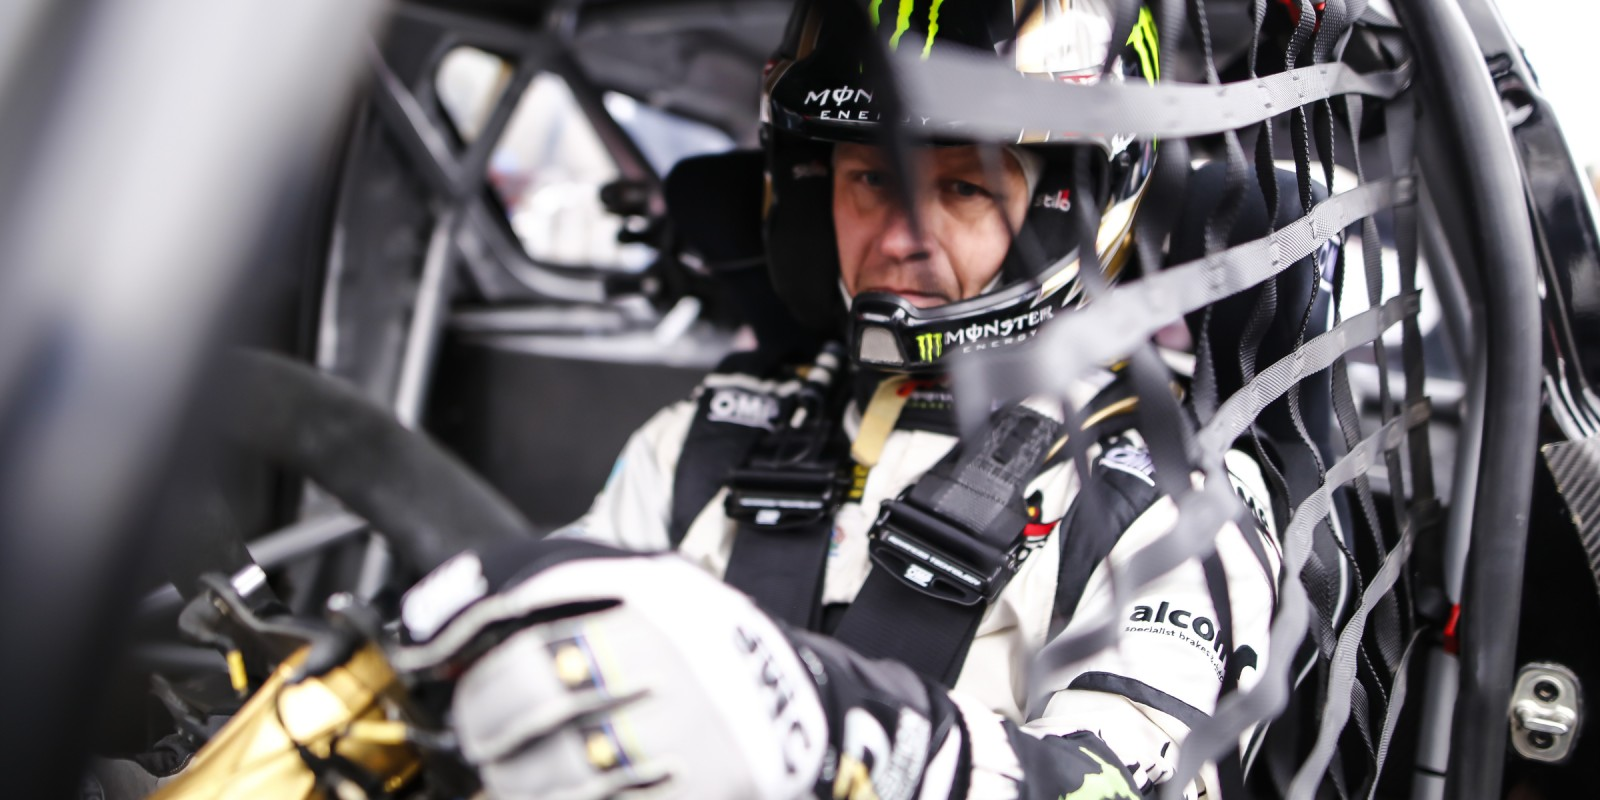 Images from day one of the 2016 World RX of Germany, at the Estering in Buxtehude.